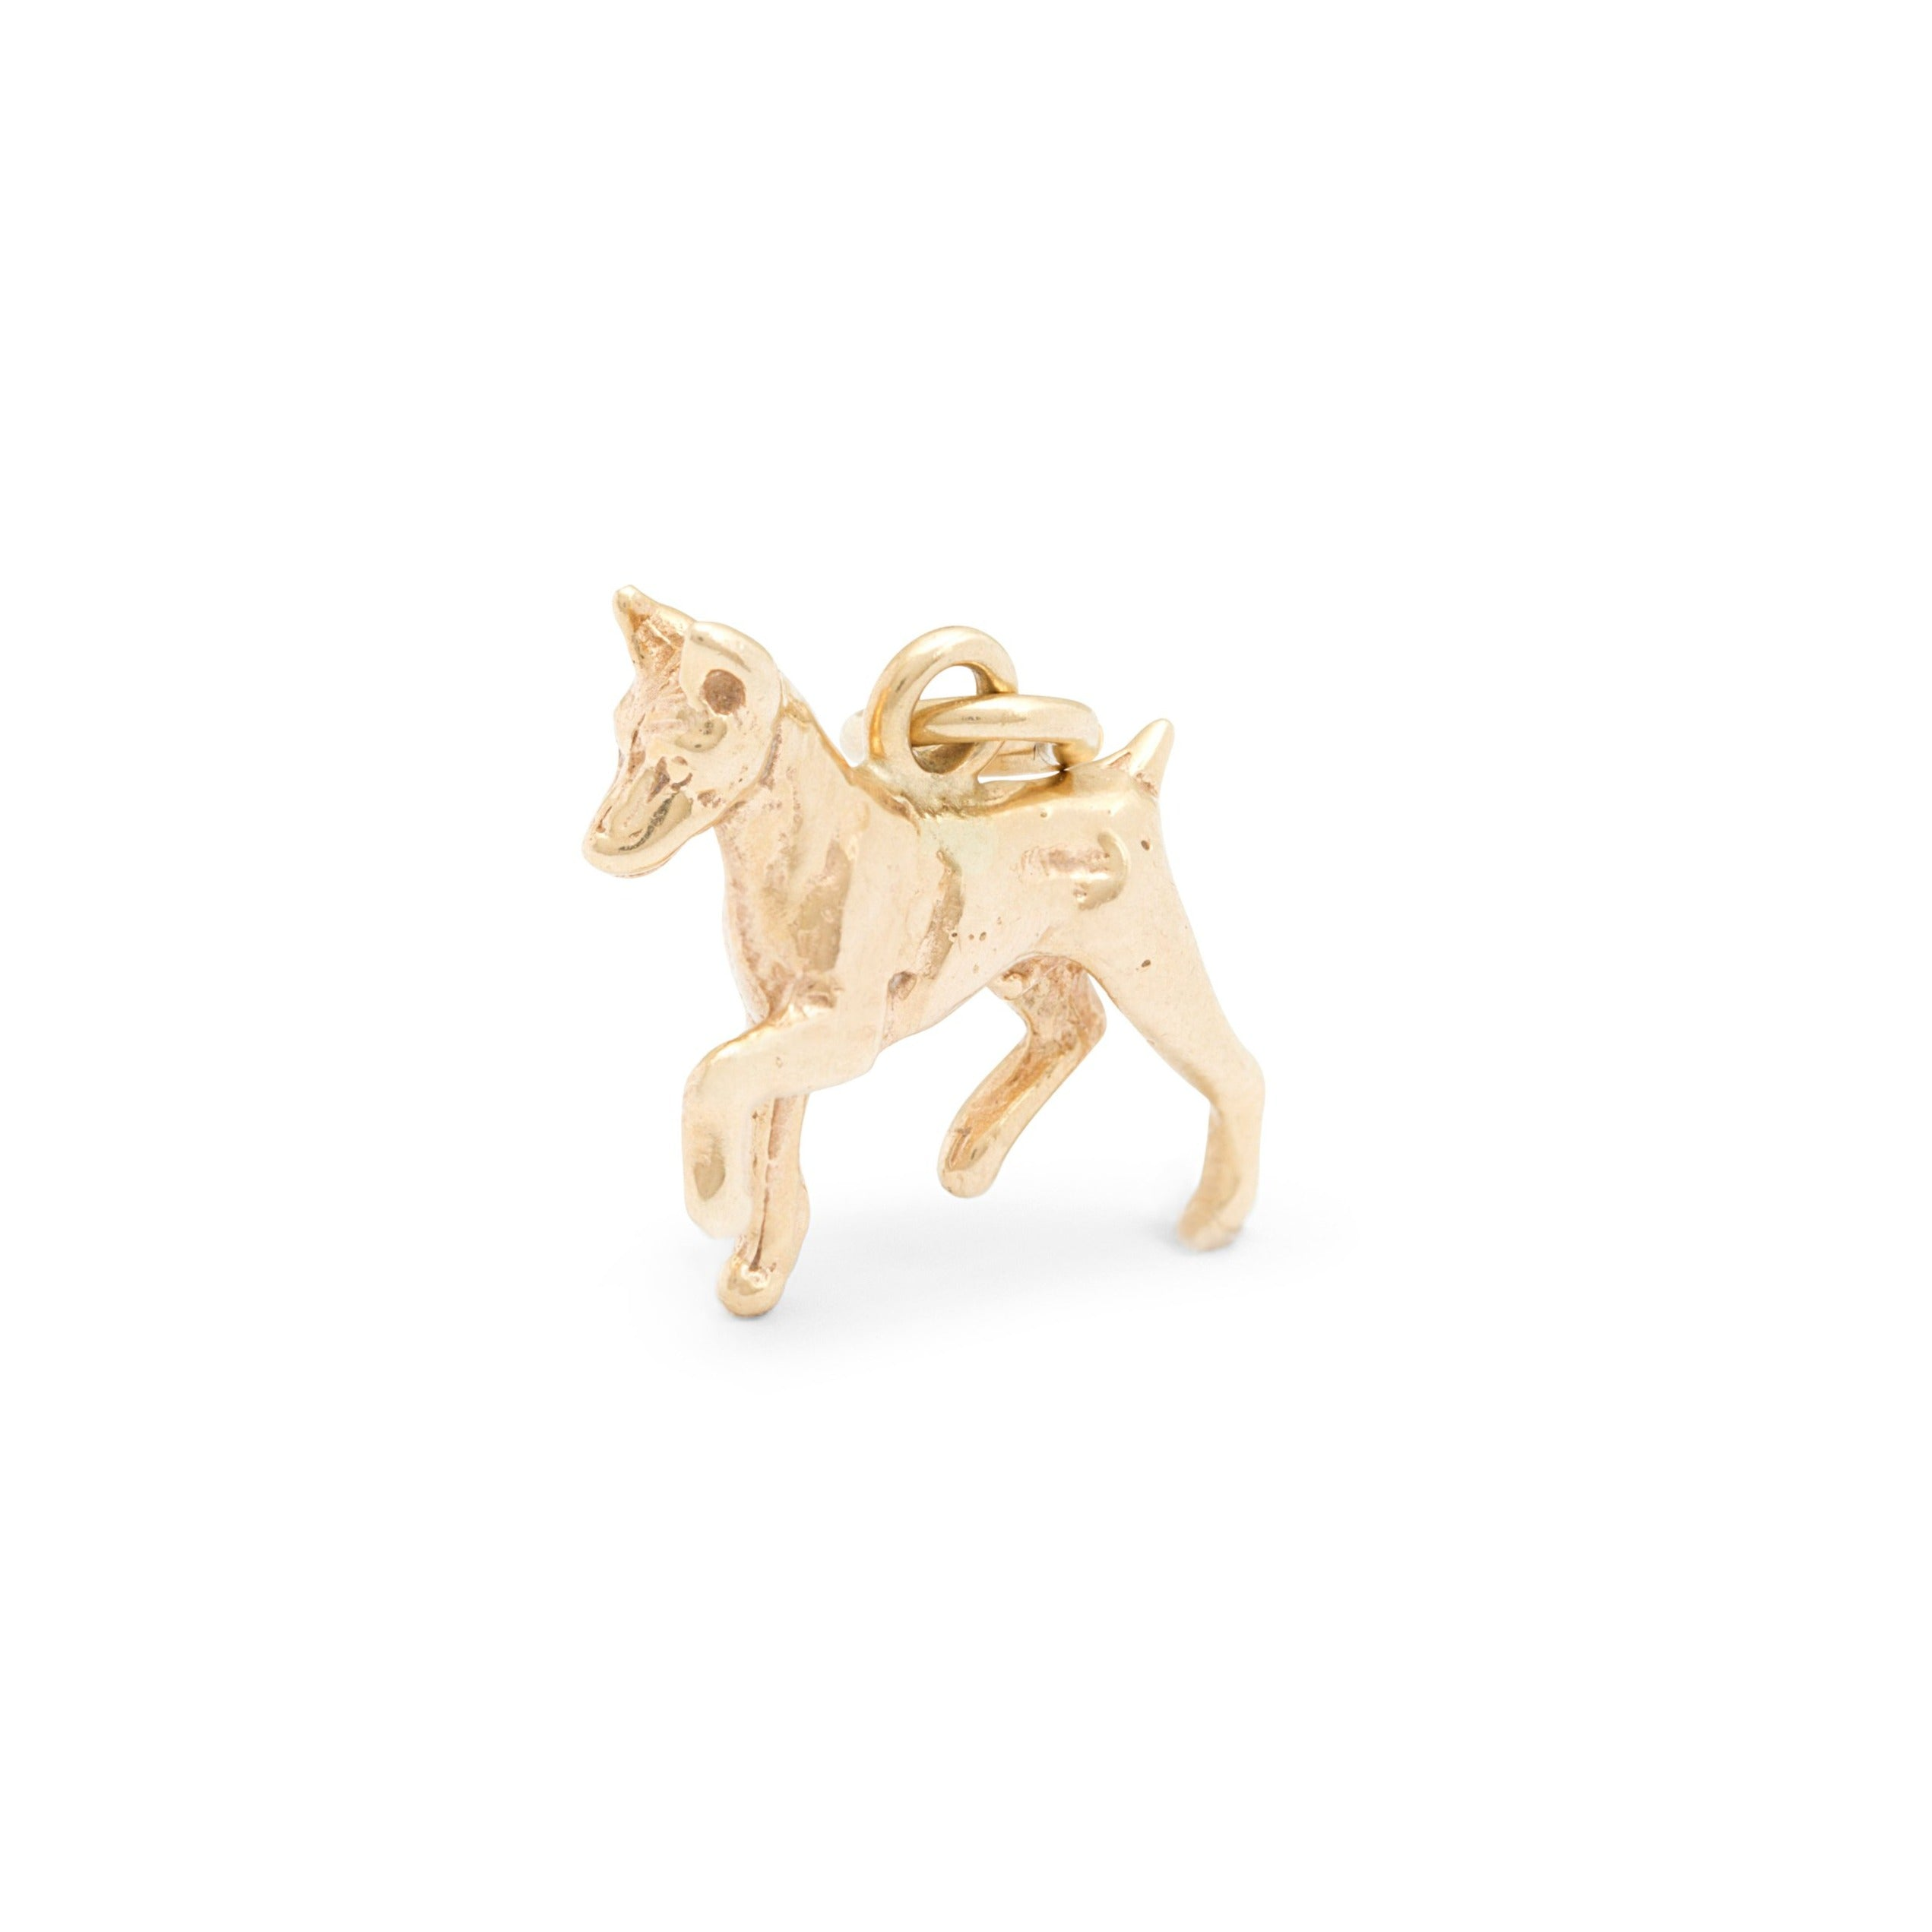 Trotting Doberman Pinscher 14K Gold Dog Charm